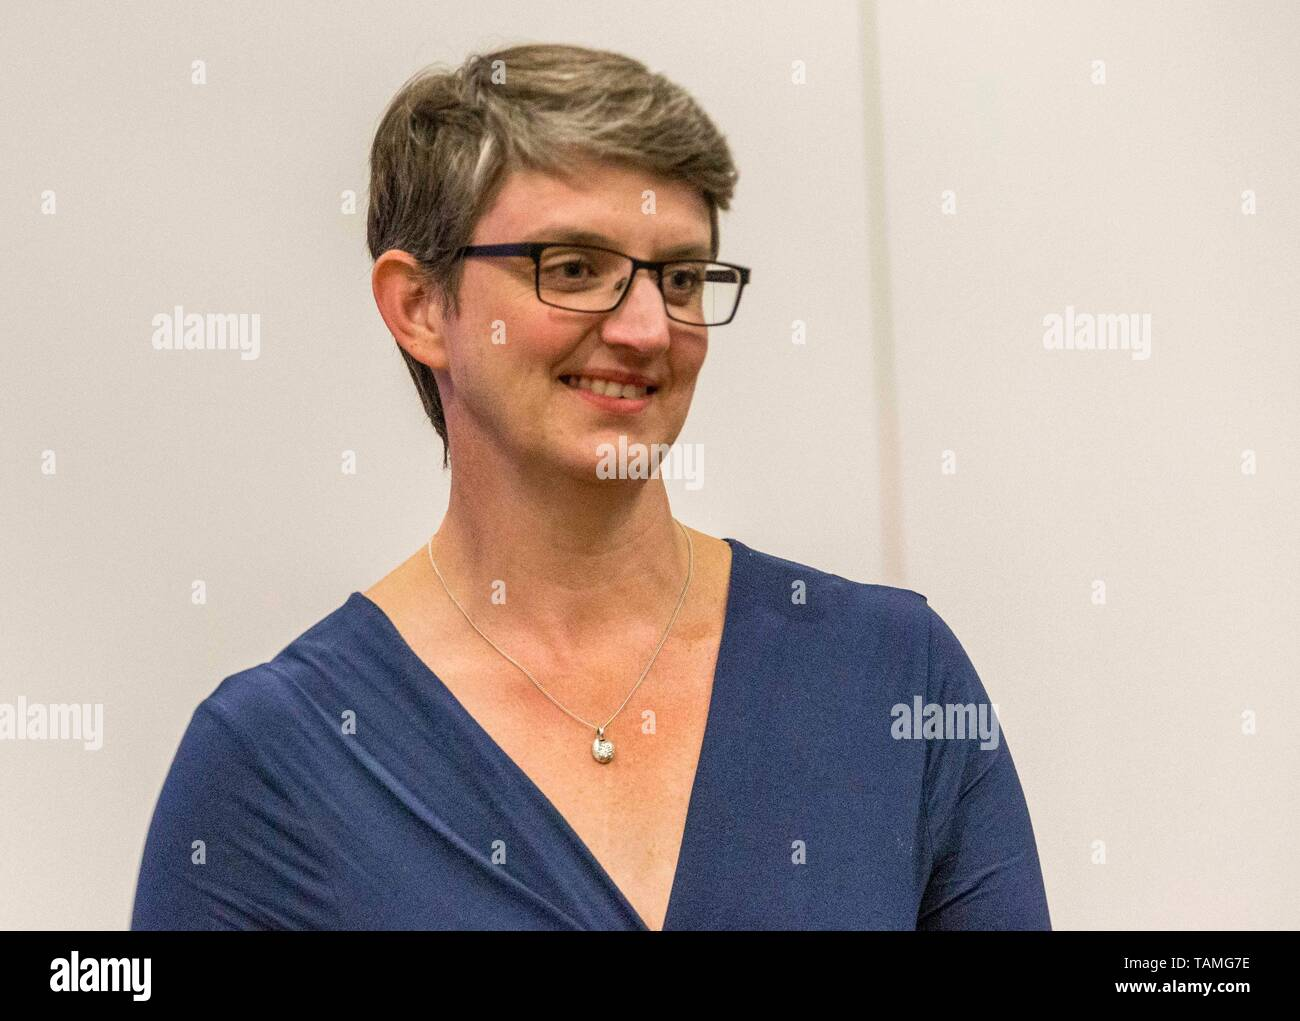 Edinburgh, UK. 26th May, 2019. The counting of votes in the European Parliamentary Election for the City of Edinburgh counting area takes place at EICC, Morrison Street, Edinburgh.   Pictured: Maggie Chapman, Co-convener of the Scottish Green Party and the lead candidate for the party in the election Credit: Rich Dyson/Alamy Live News - Stock Image